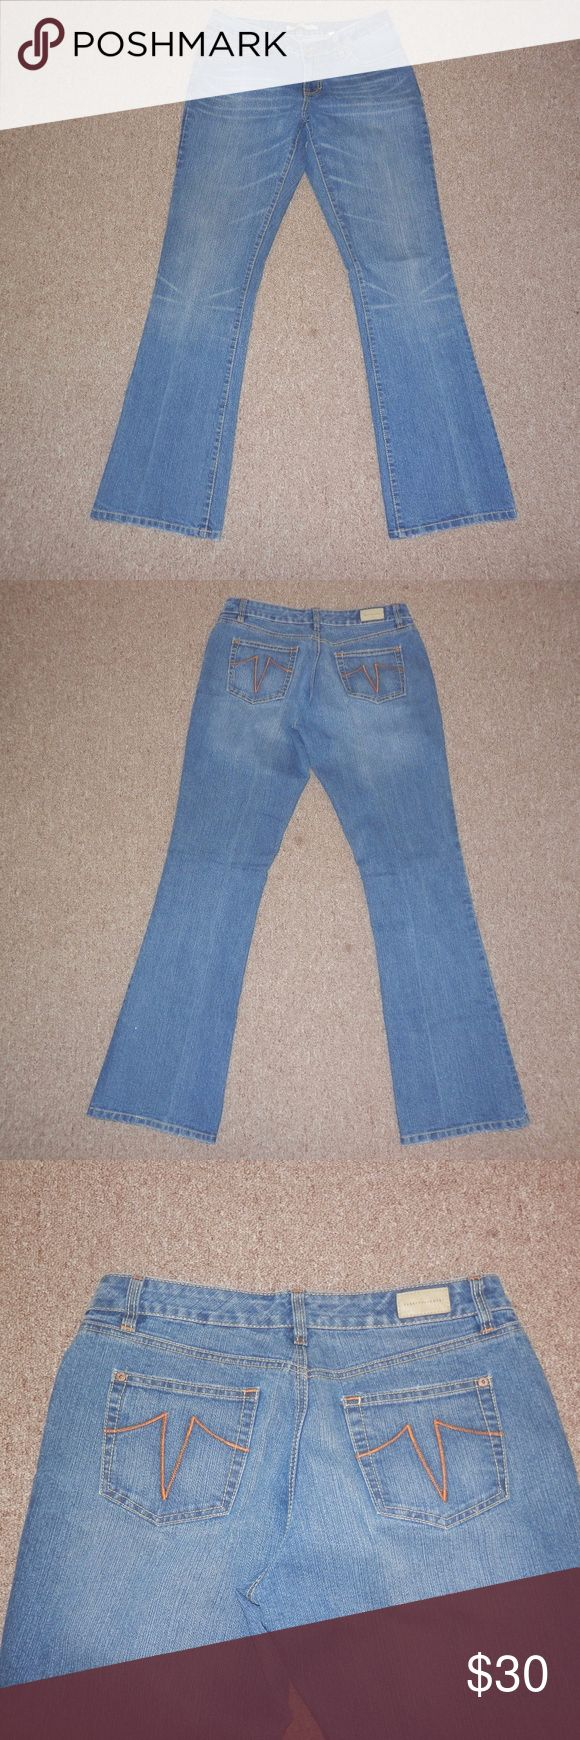 "Sz 10 Vintage Sergio Valente Mom Jeans Sergio Valente Sz 10 Vintage medium wash boot cut Mom jeans Waist 32"" Inseam 32"" Rise 9"" Excellent condition Sergio Valente Jeans"